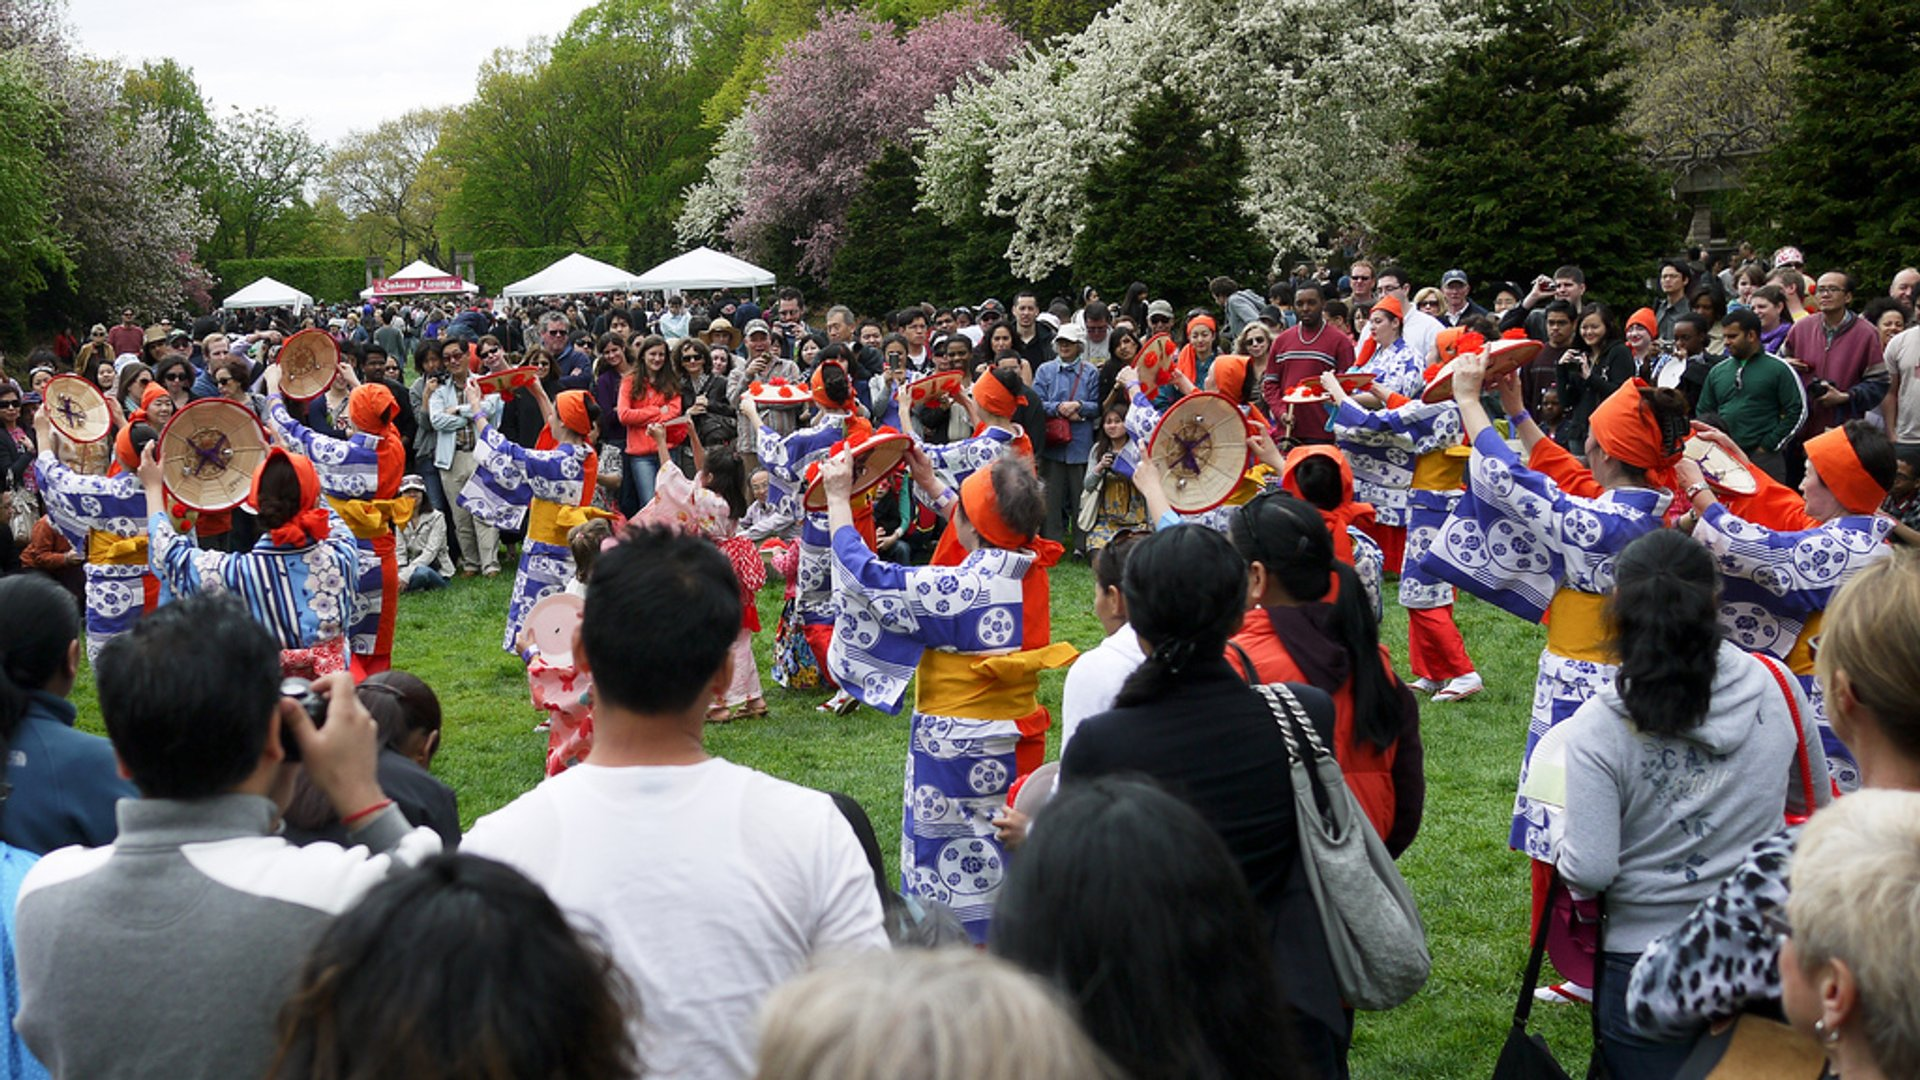 Sakura Matsuri: Cherry Blossom Festival in New York - Best Season 2020